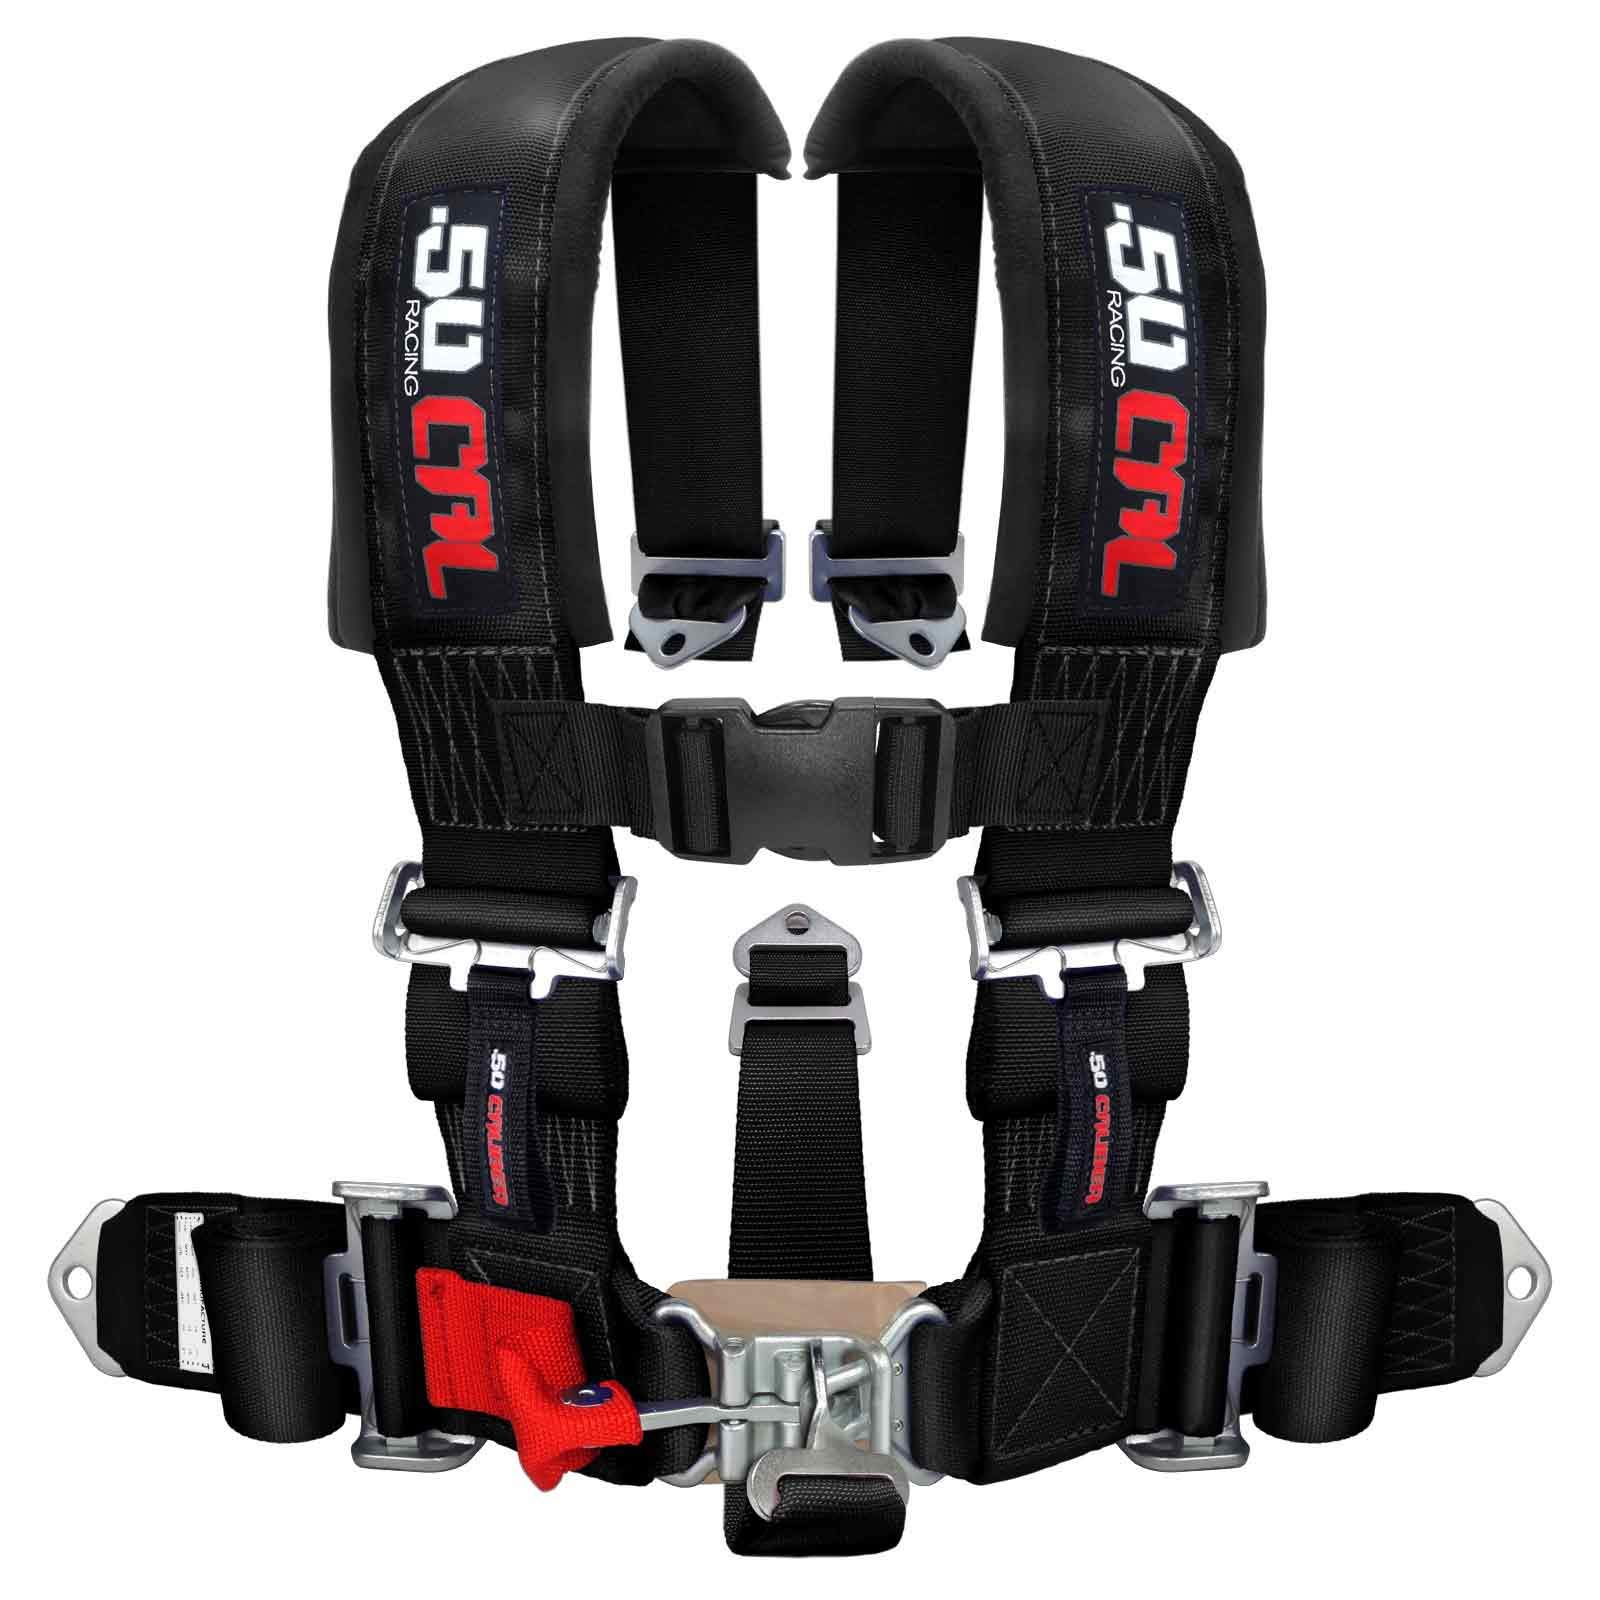 5 Point Racing Harness with Black 3'' Straps for Cars, Trucks, UTV and Off Road Vehicles [6001]